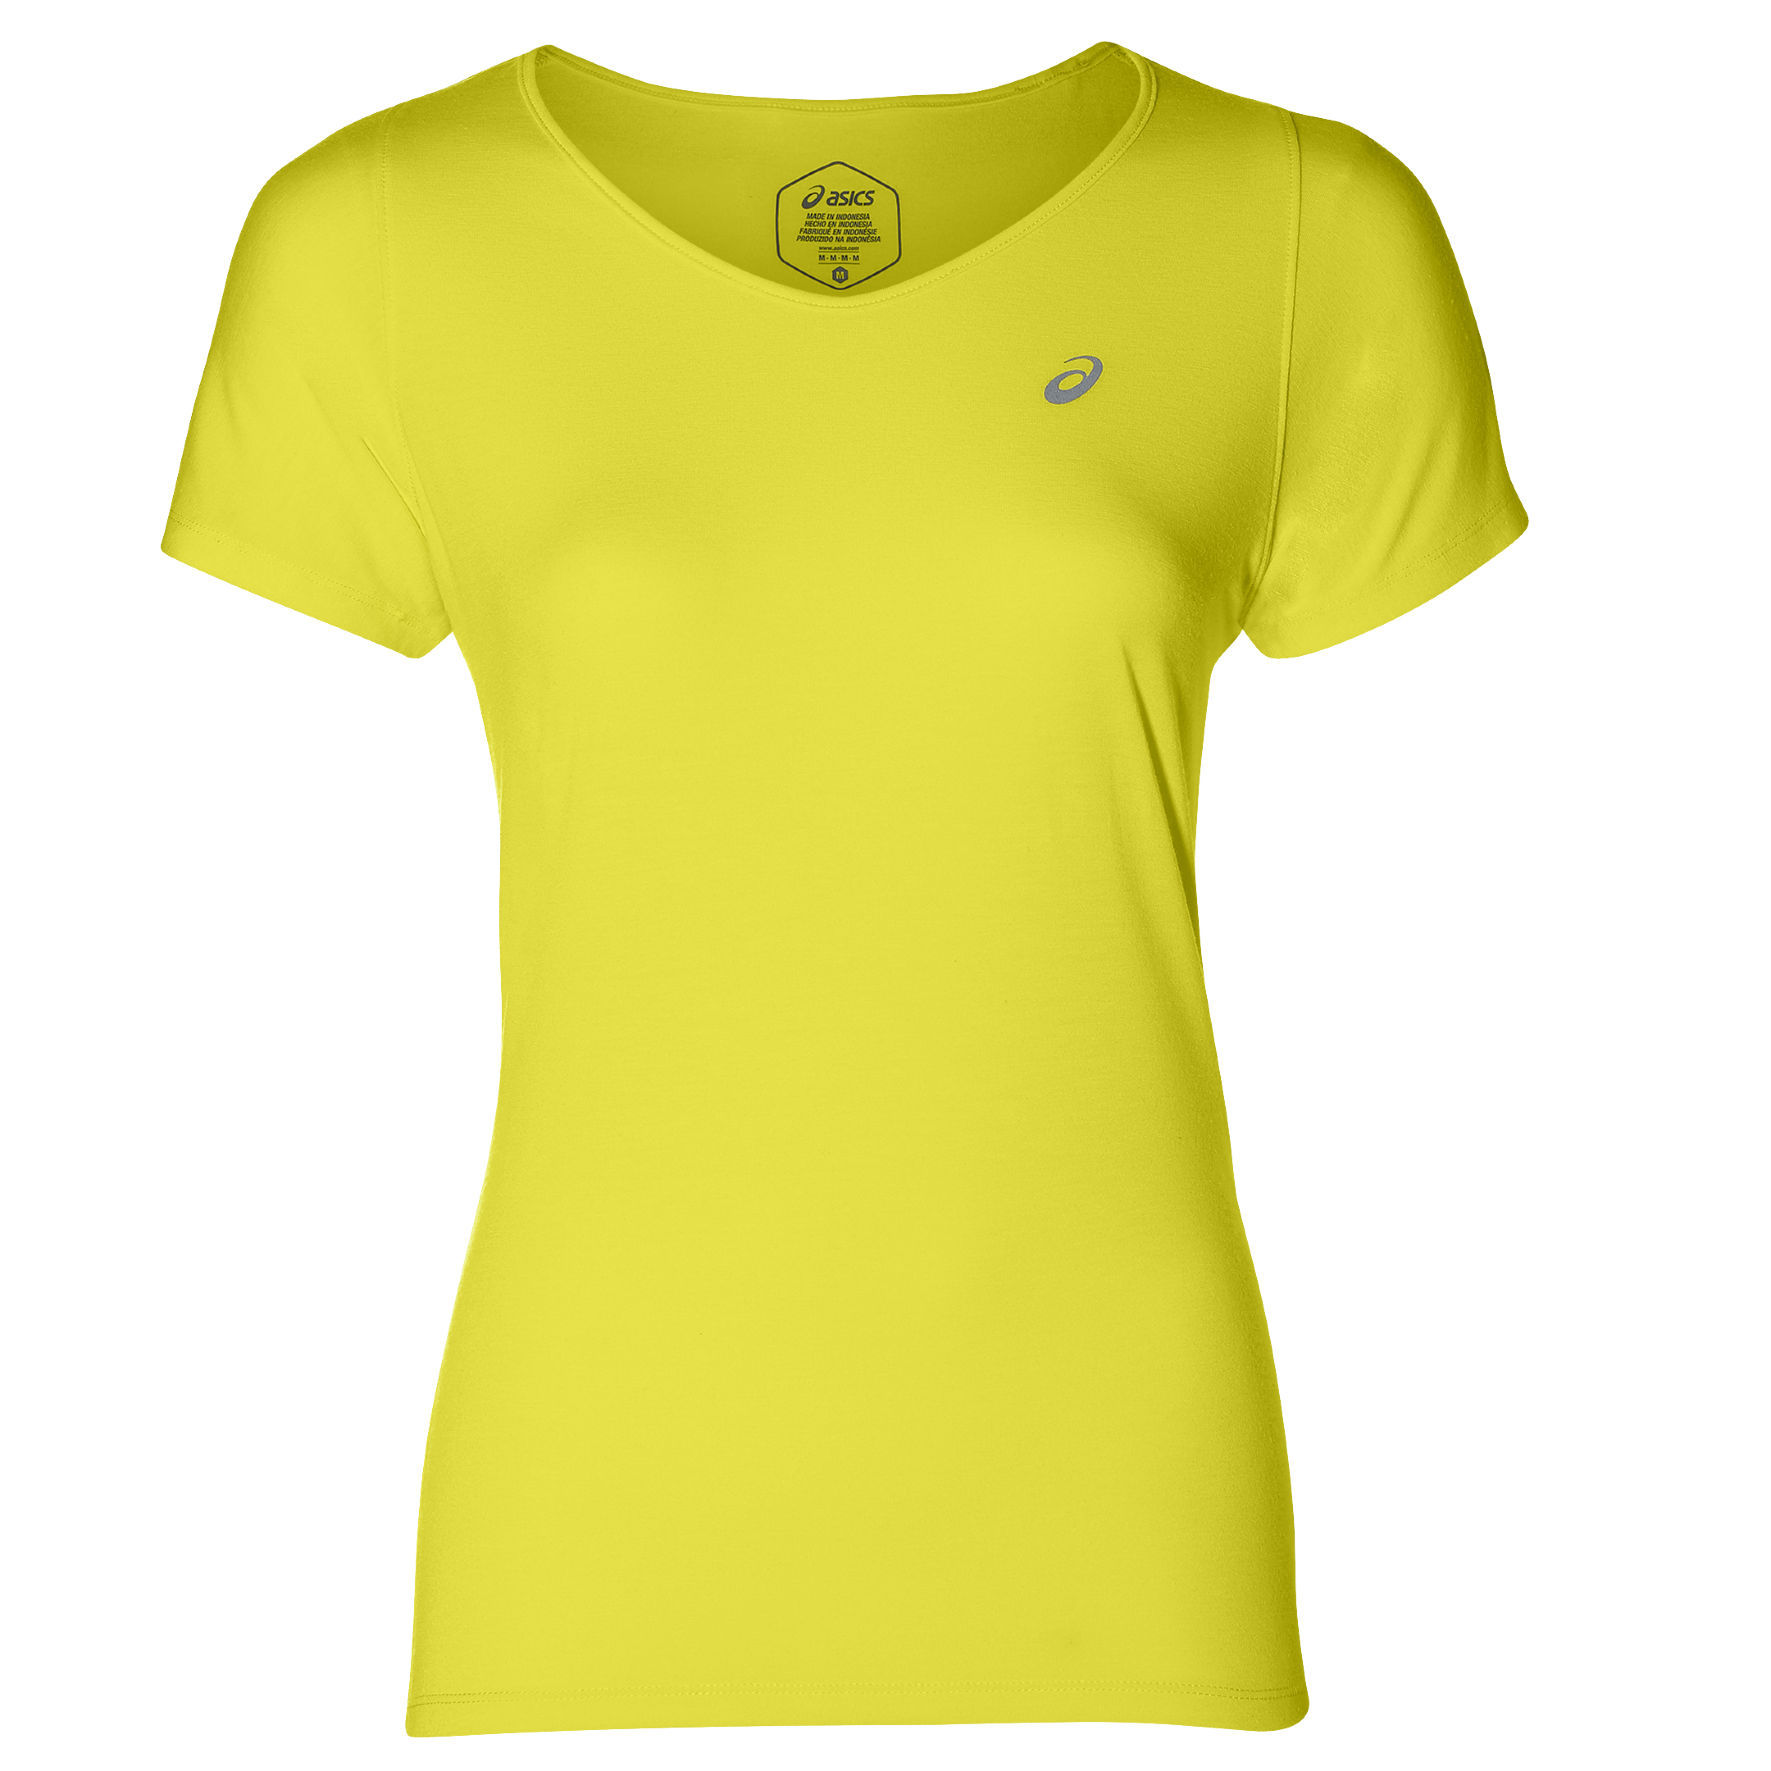 Asics Lady V-Neck SS Top in Gelb